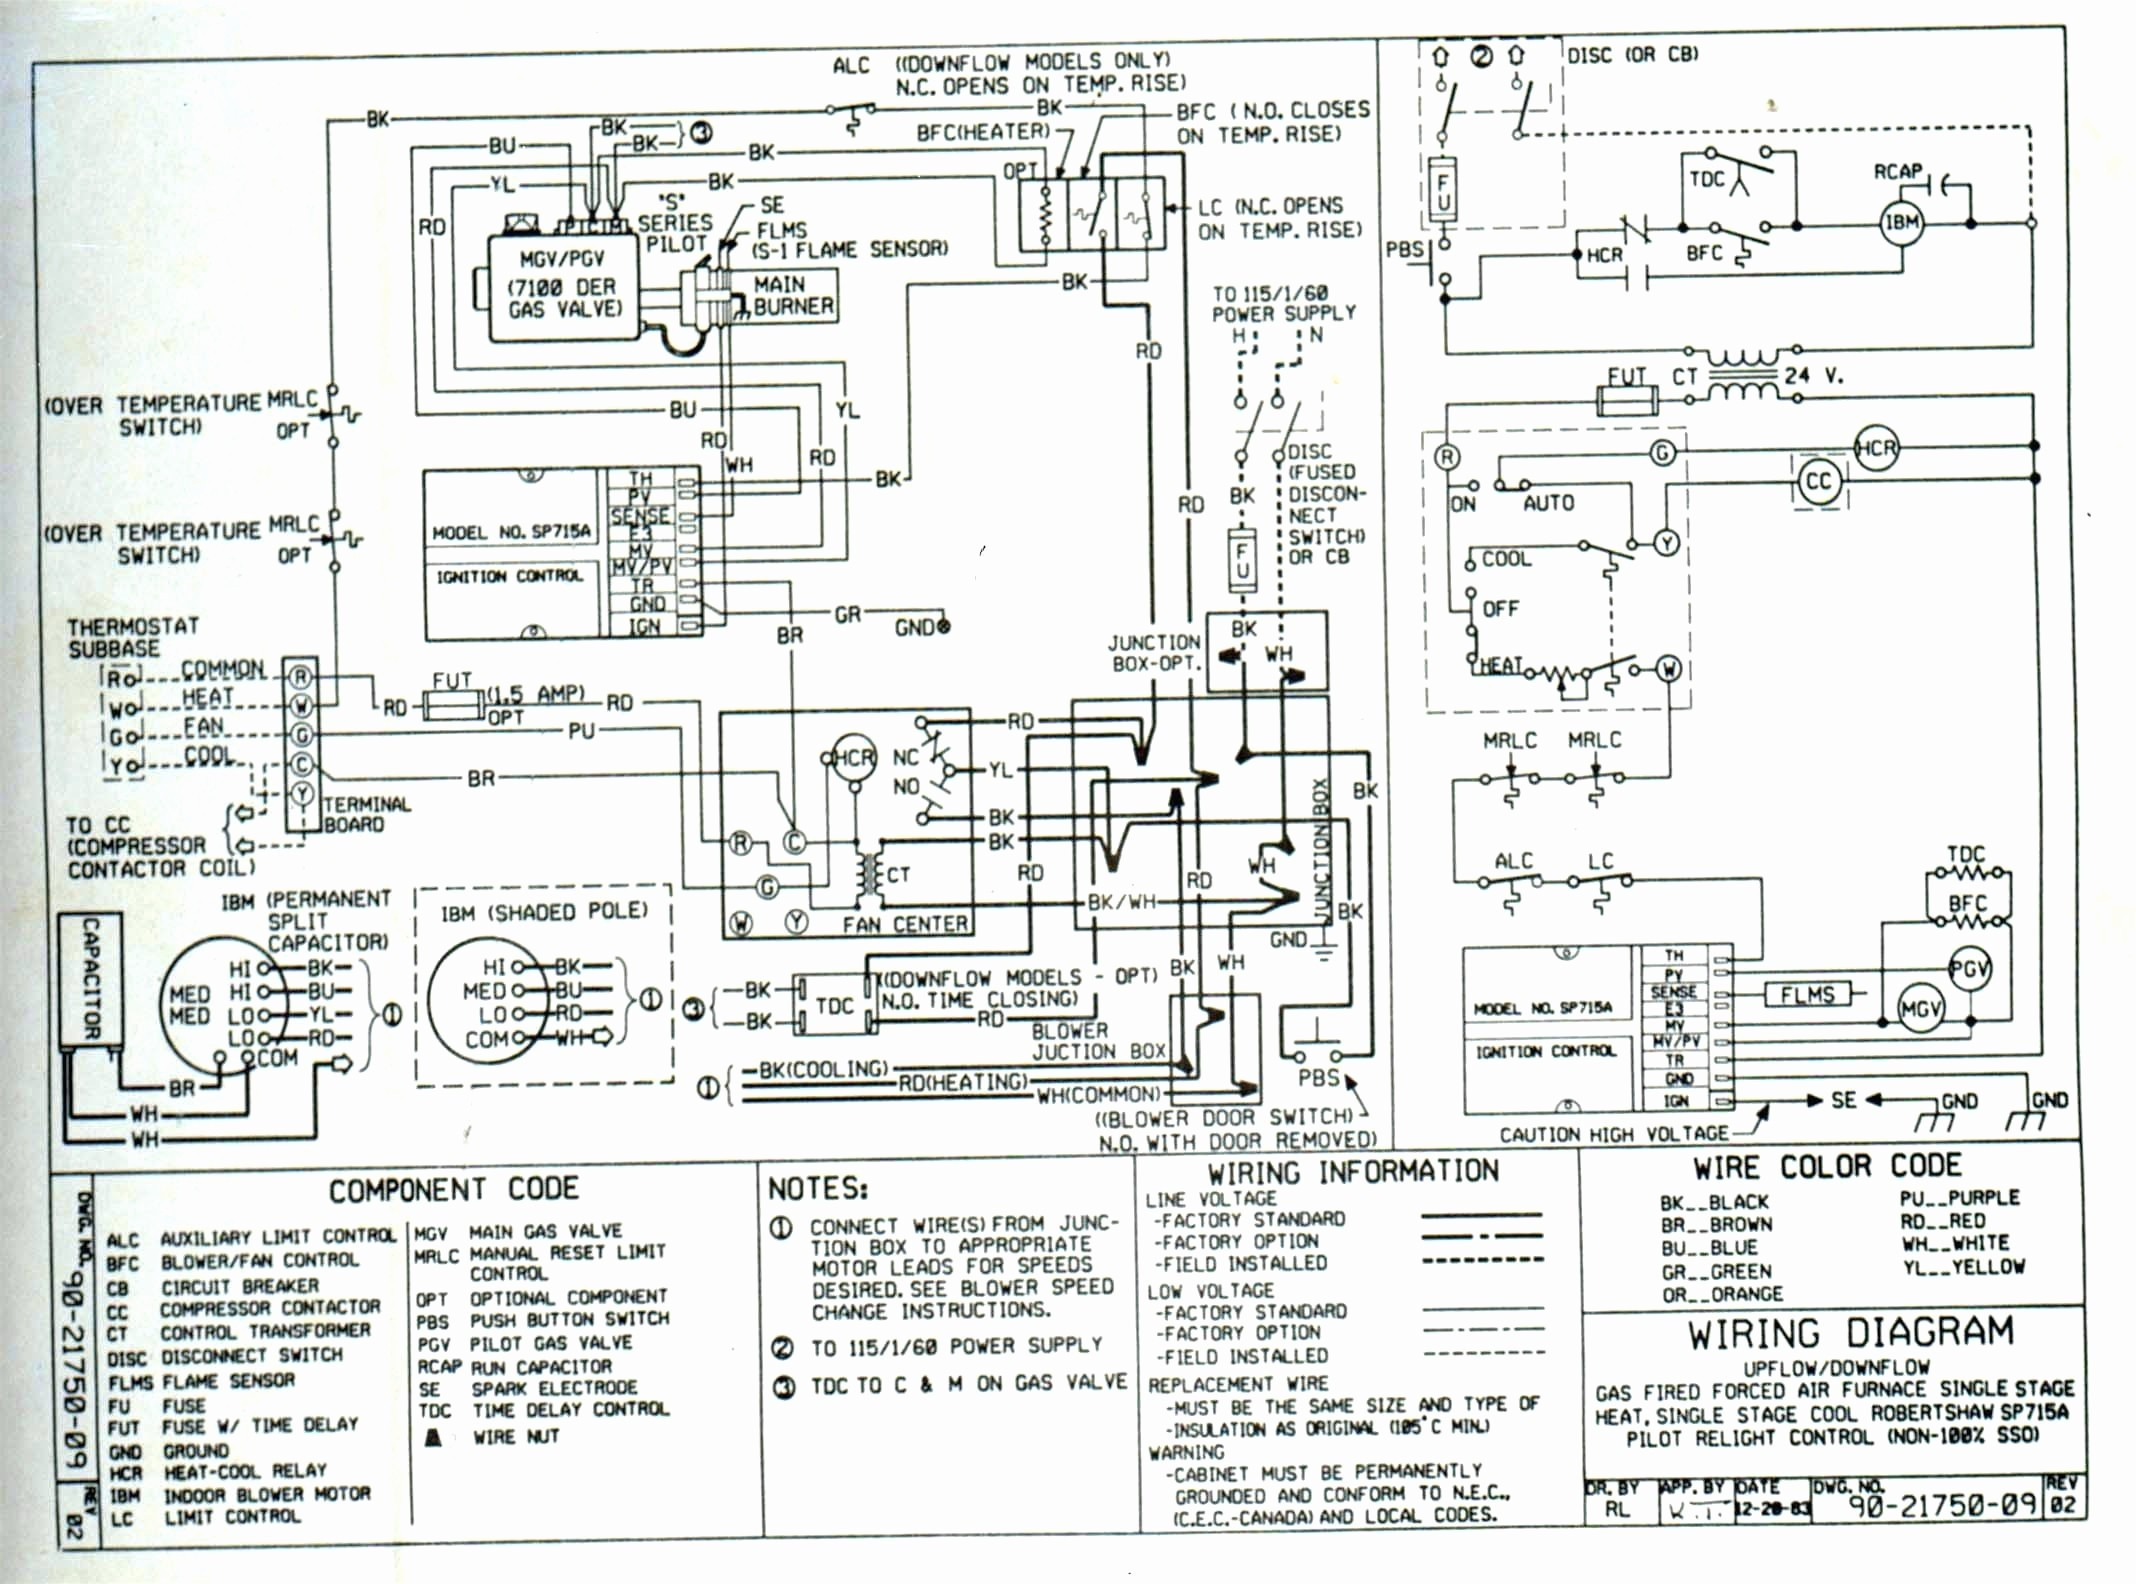 Reliance Csr302 Wiring Diagram Best Bodine Electric Motor Wiring Diagram Download